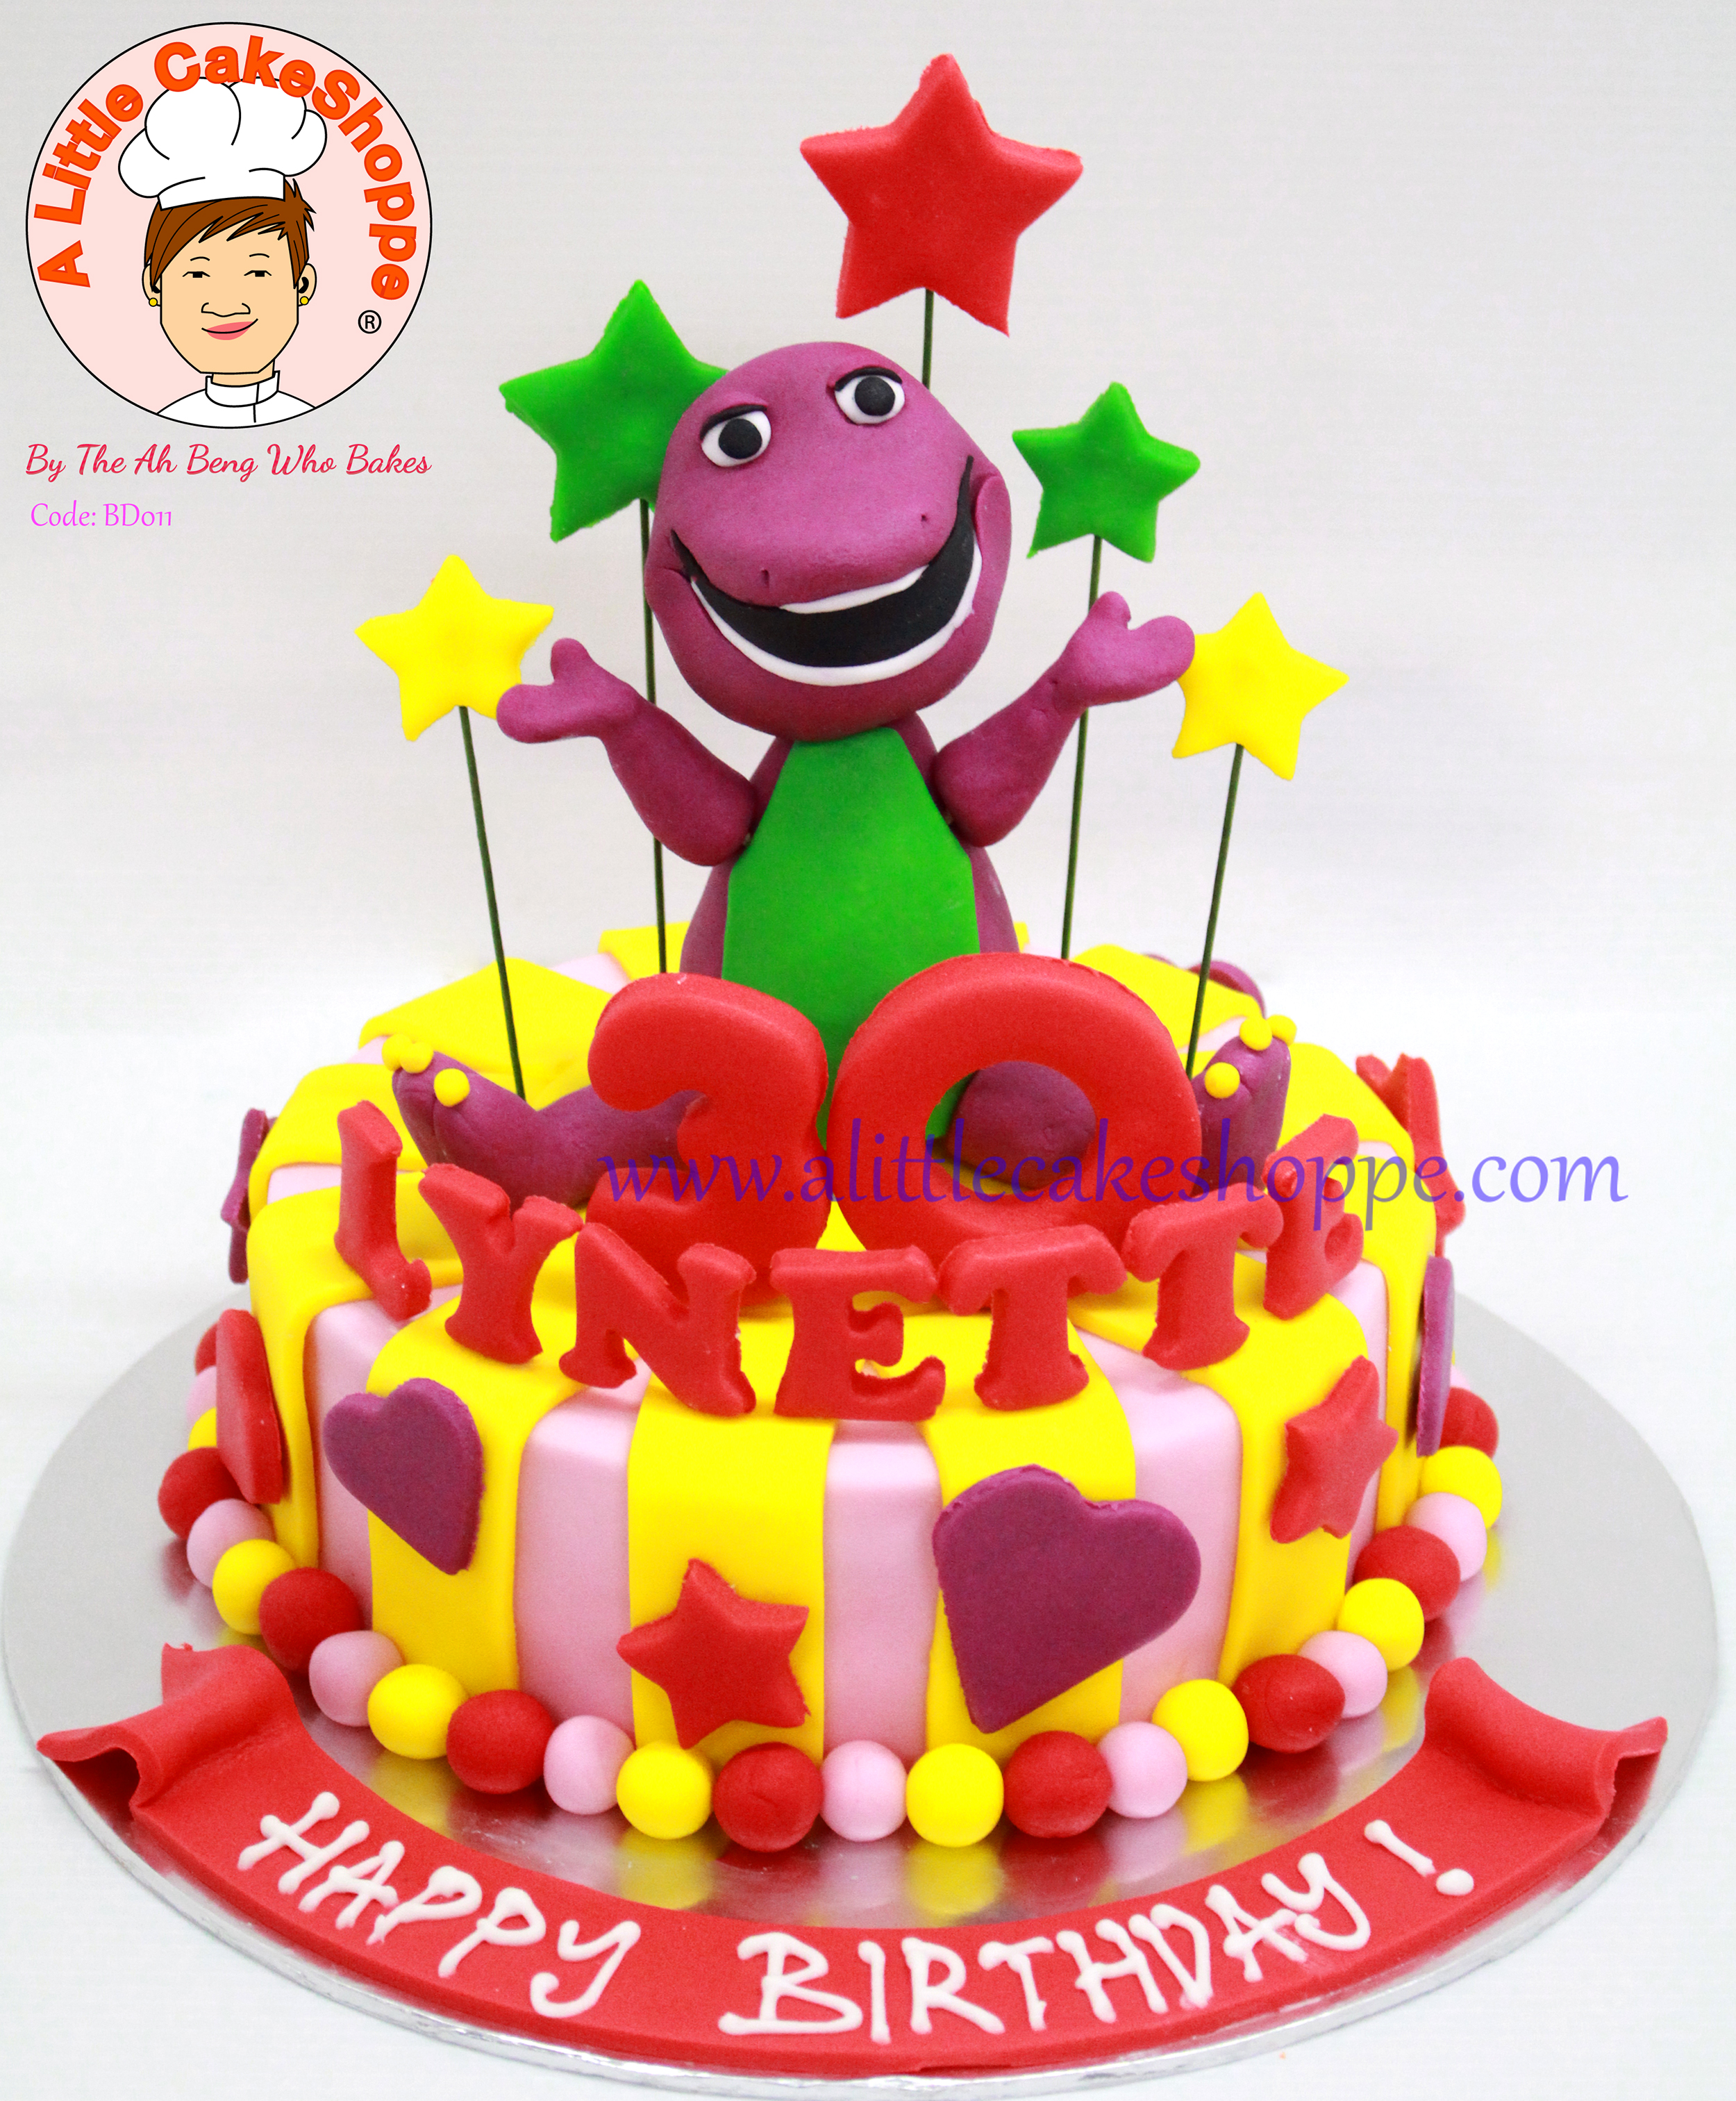 A Little Cakeshoppe Singapore Customized 2d And 3d Cakes Birthday